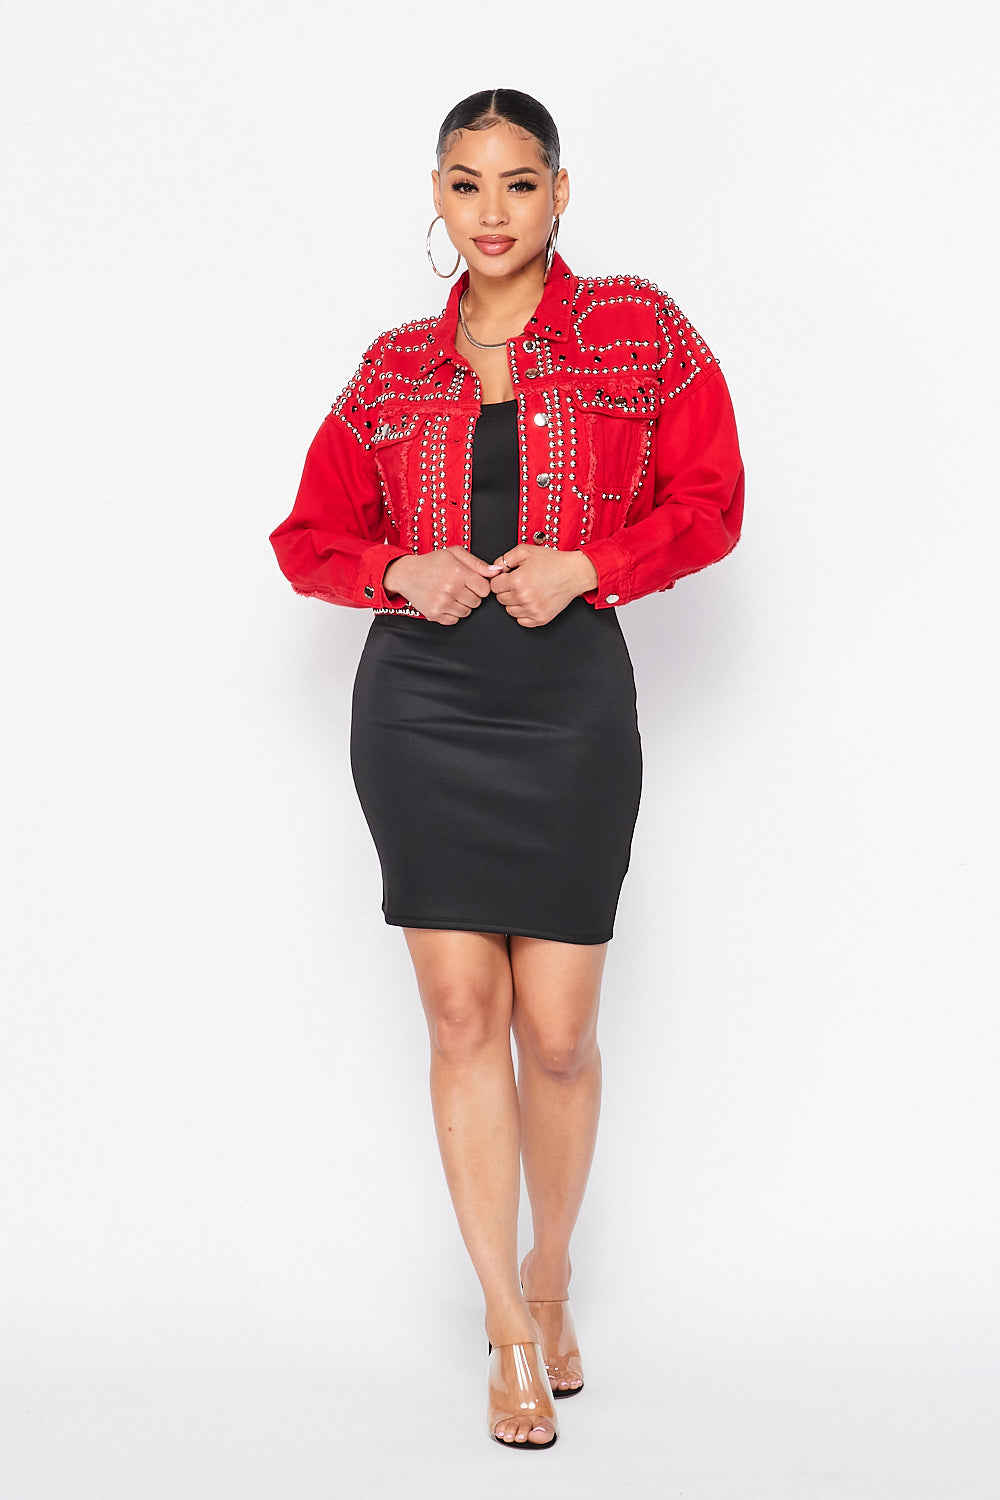 Keep You Stud Jacket-RED - Fashion House USA